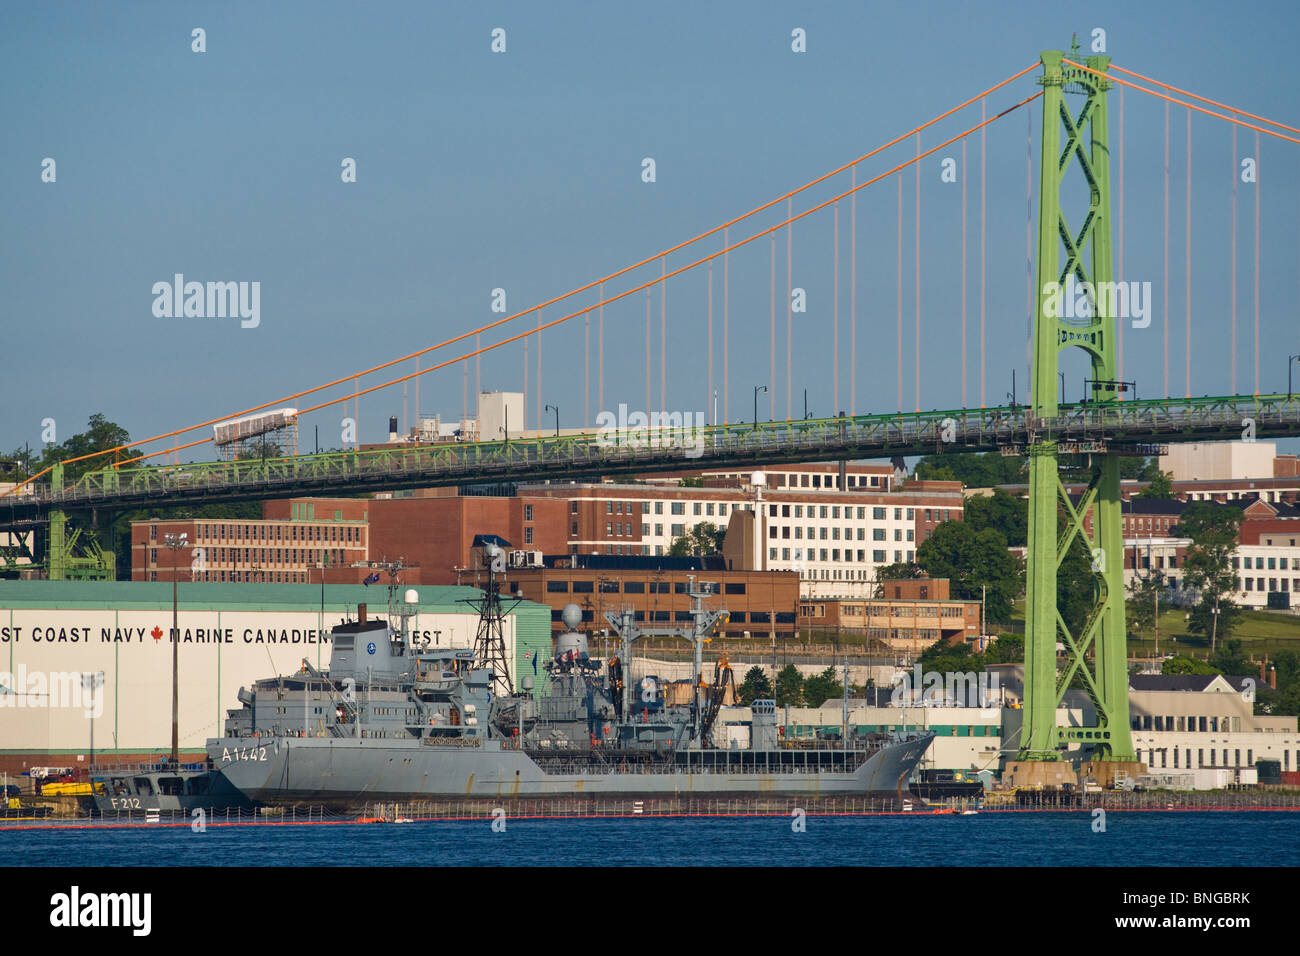 German Navy underway replenishment vessel FGS SPESSART alongside during the 2010 Fleet Review in Halifax, NS. - Stock Image